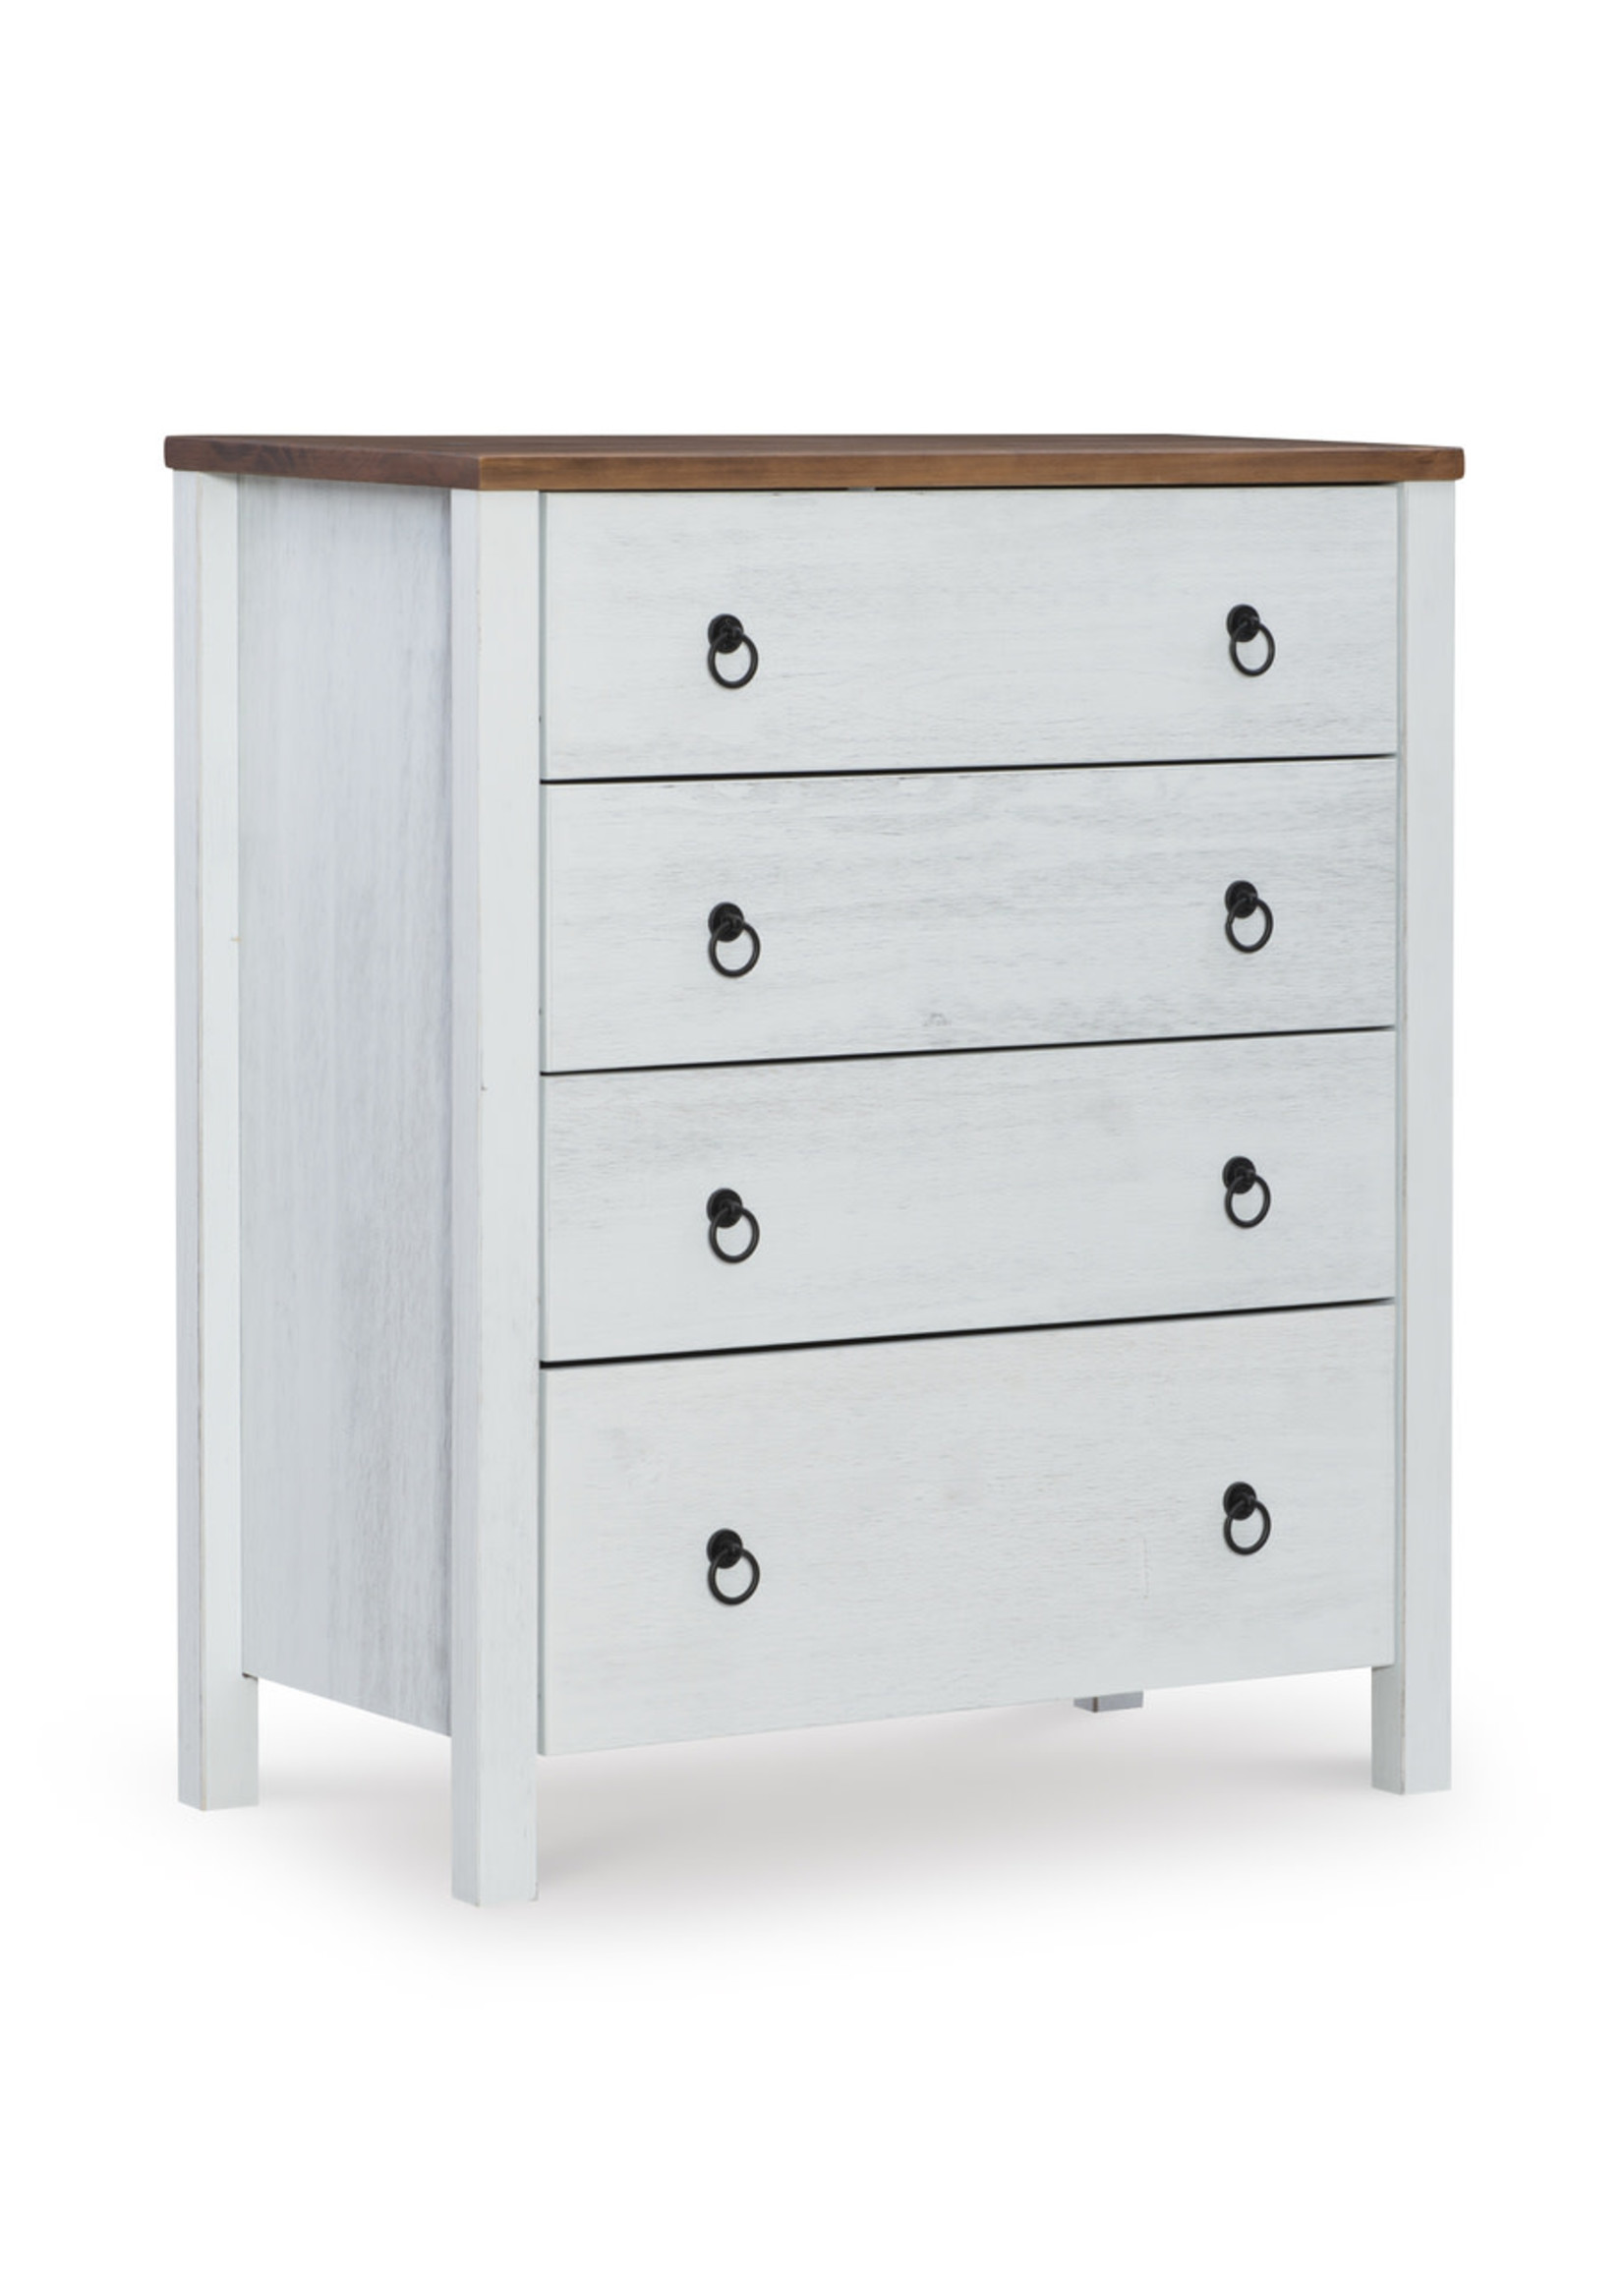 LINON 4 DR CHEST RUSTIC TWO TONE